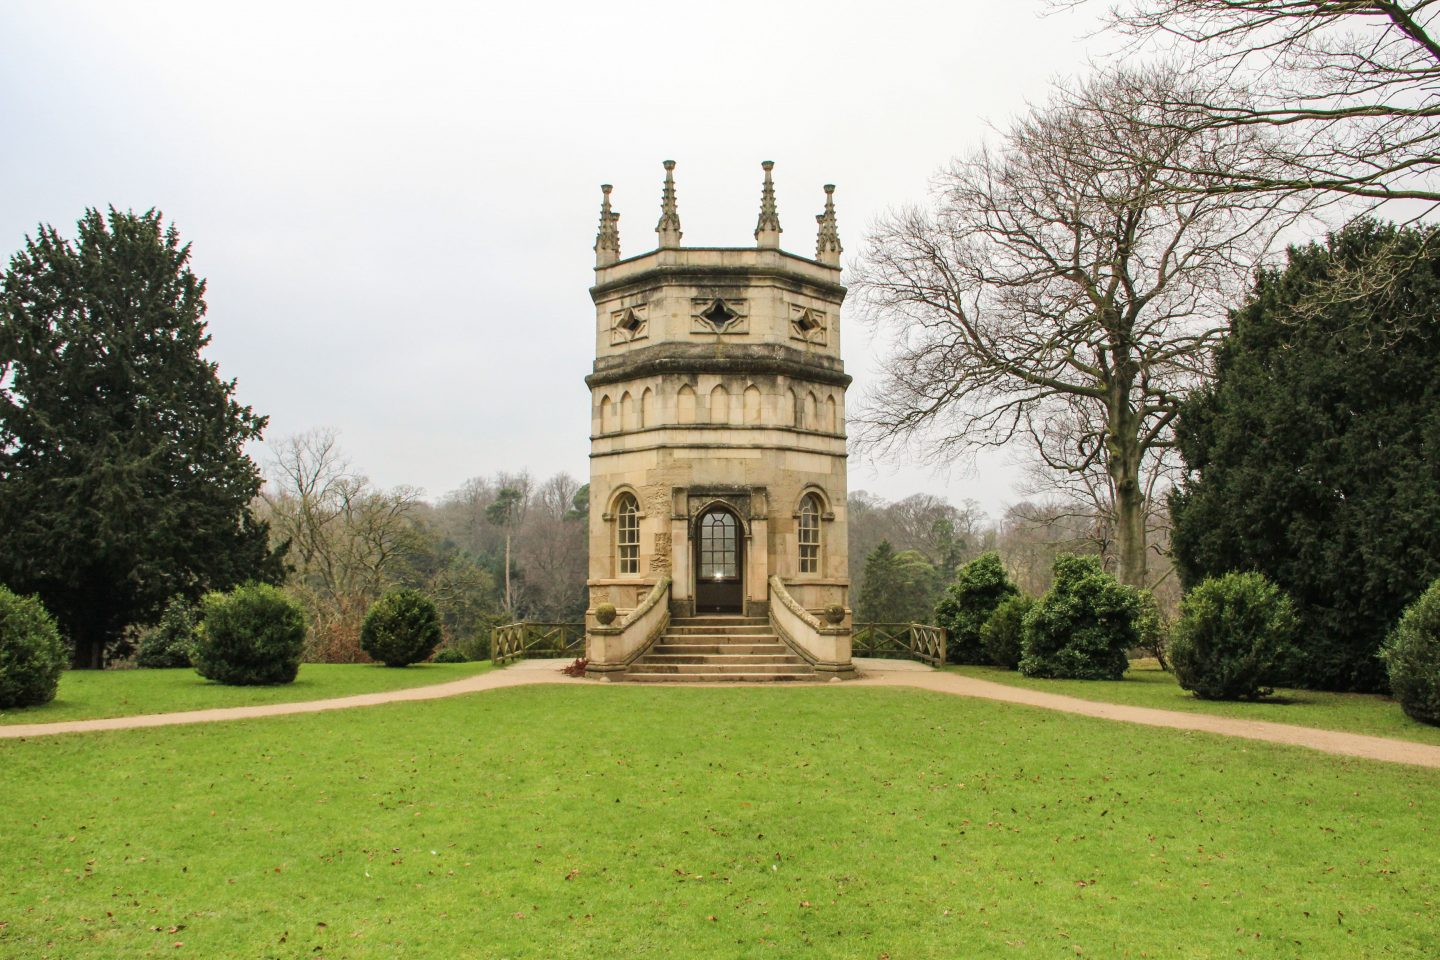 The Octagon Tower, Fountains Abbey